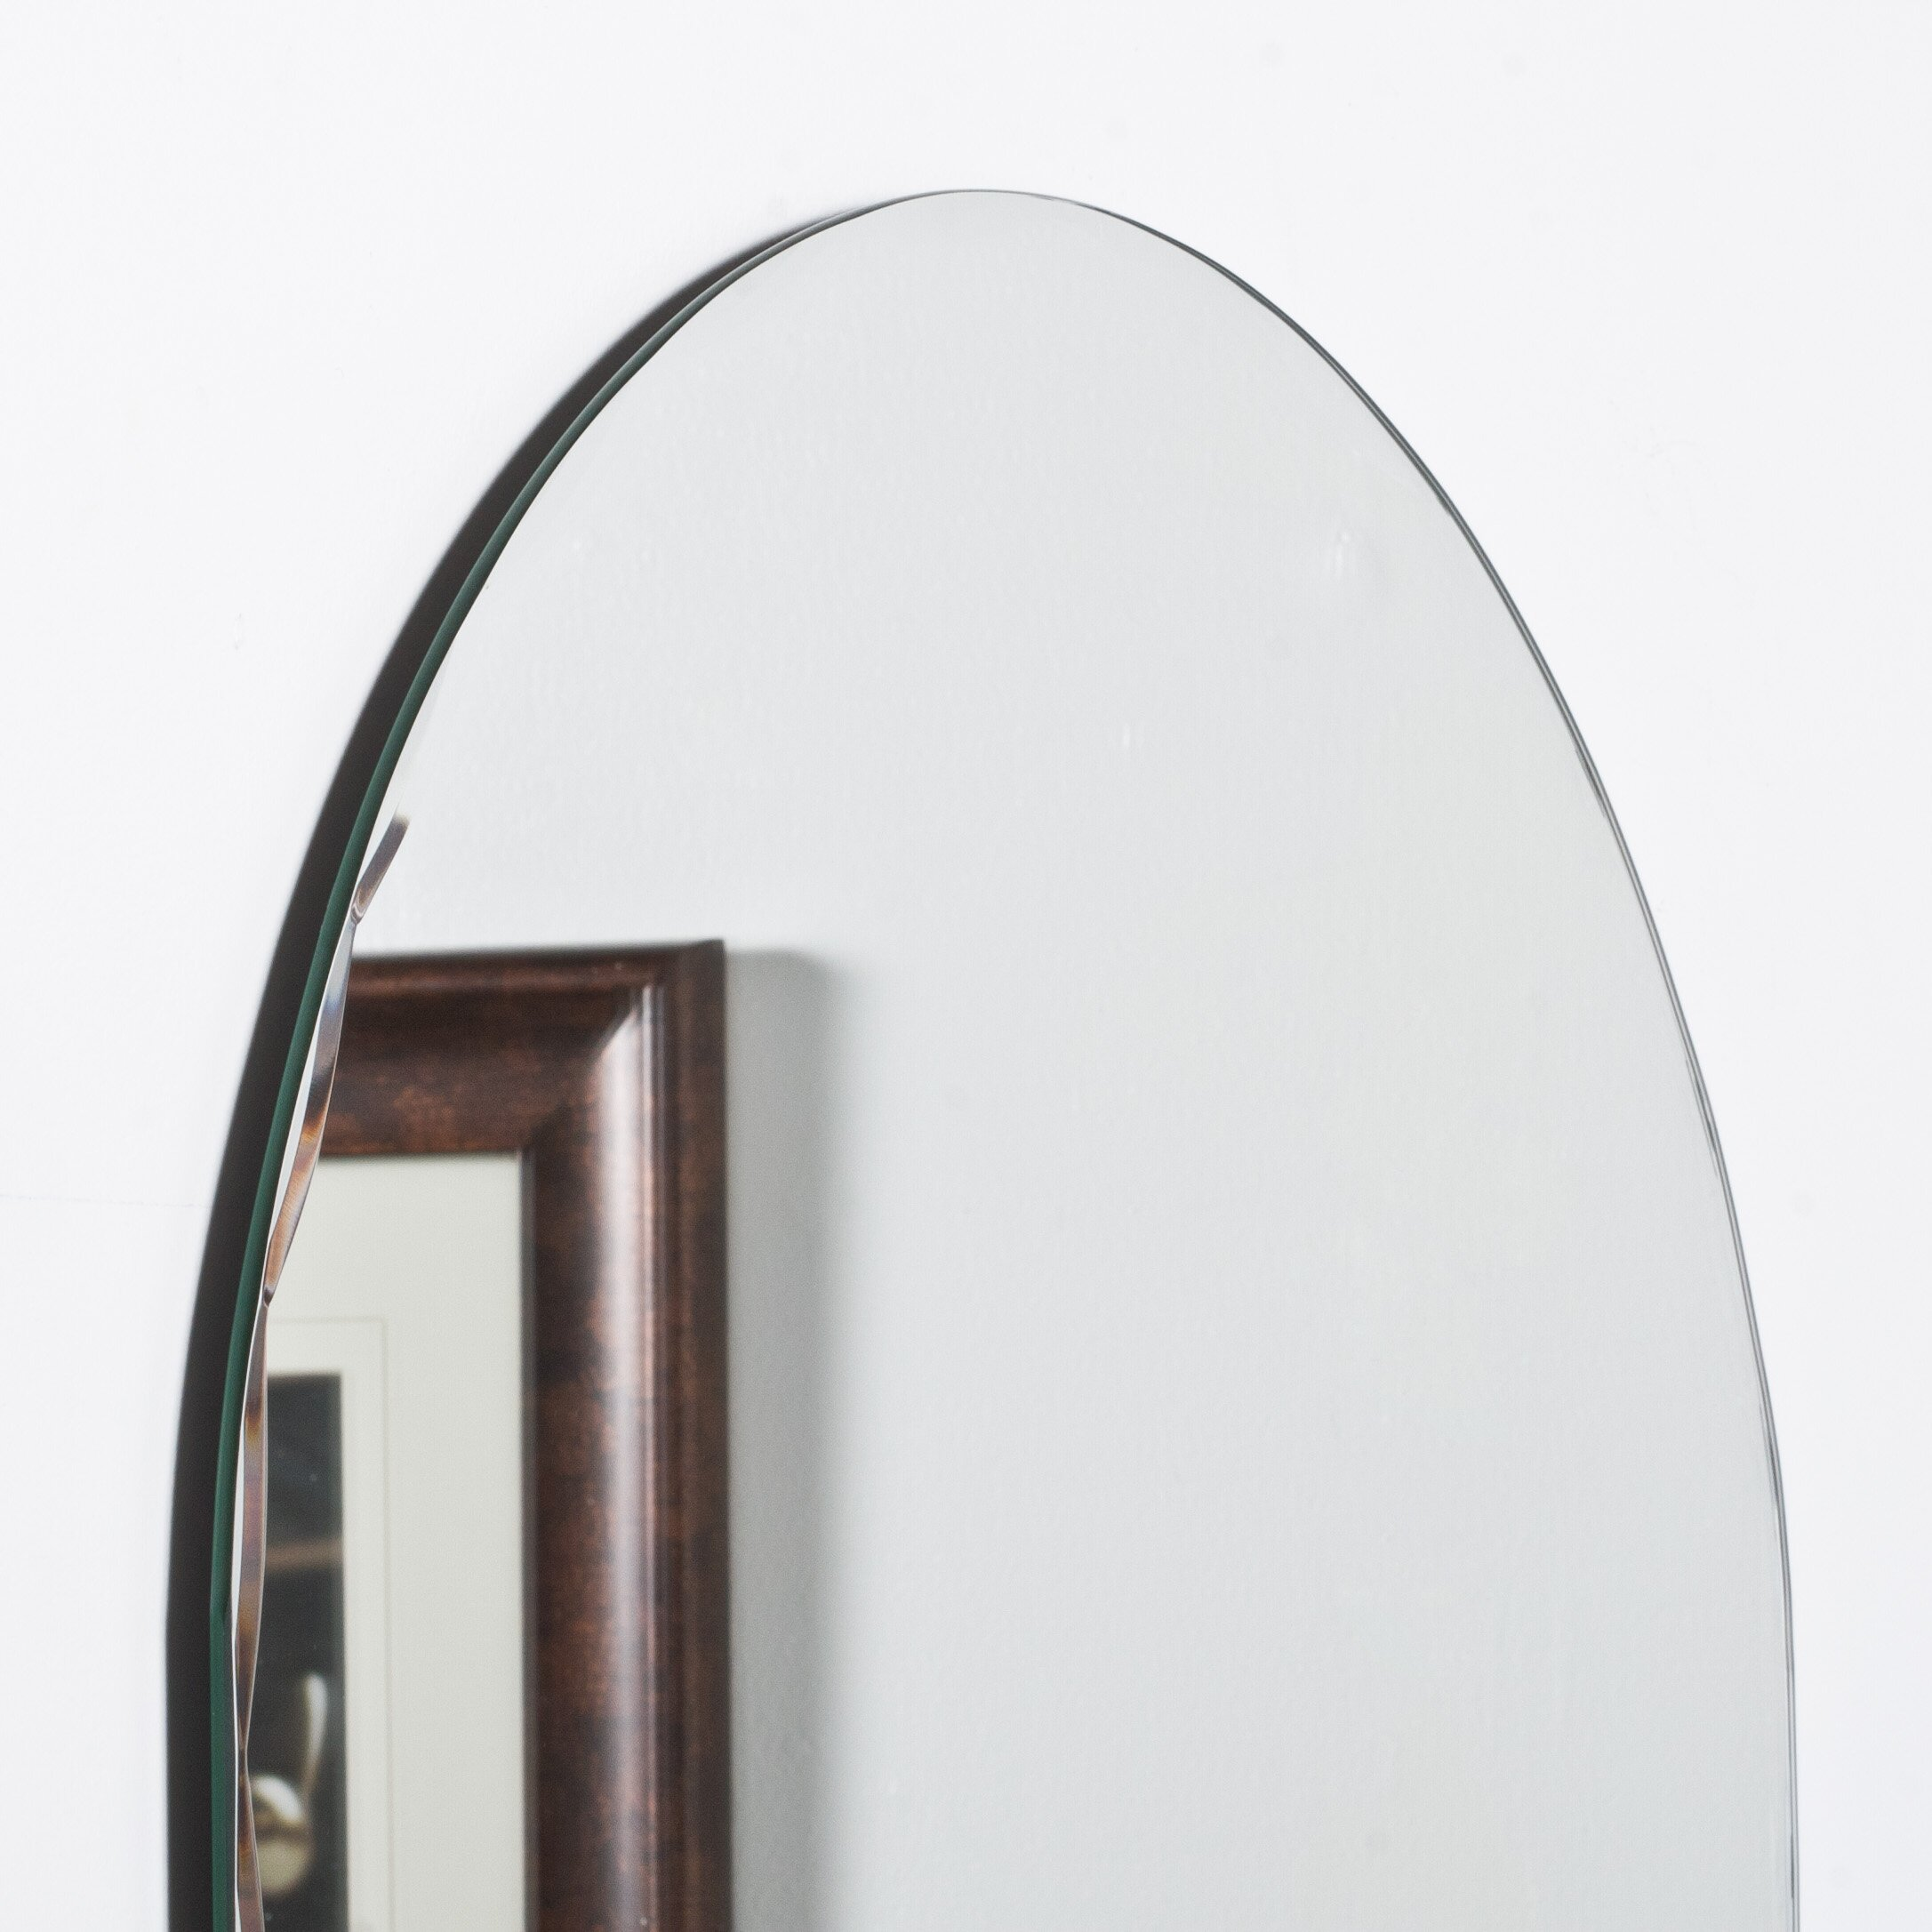 Rita modern wall mirror reviews allmodern for All modern accessories